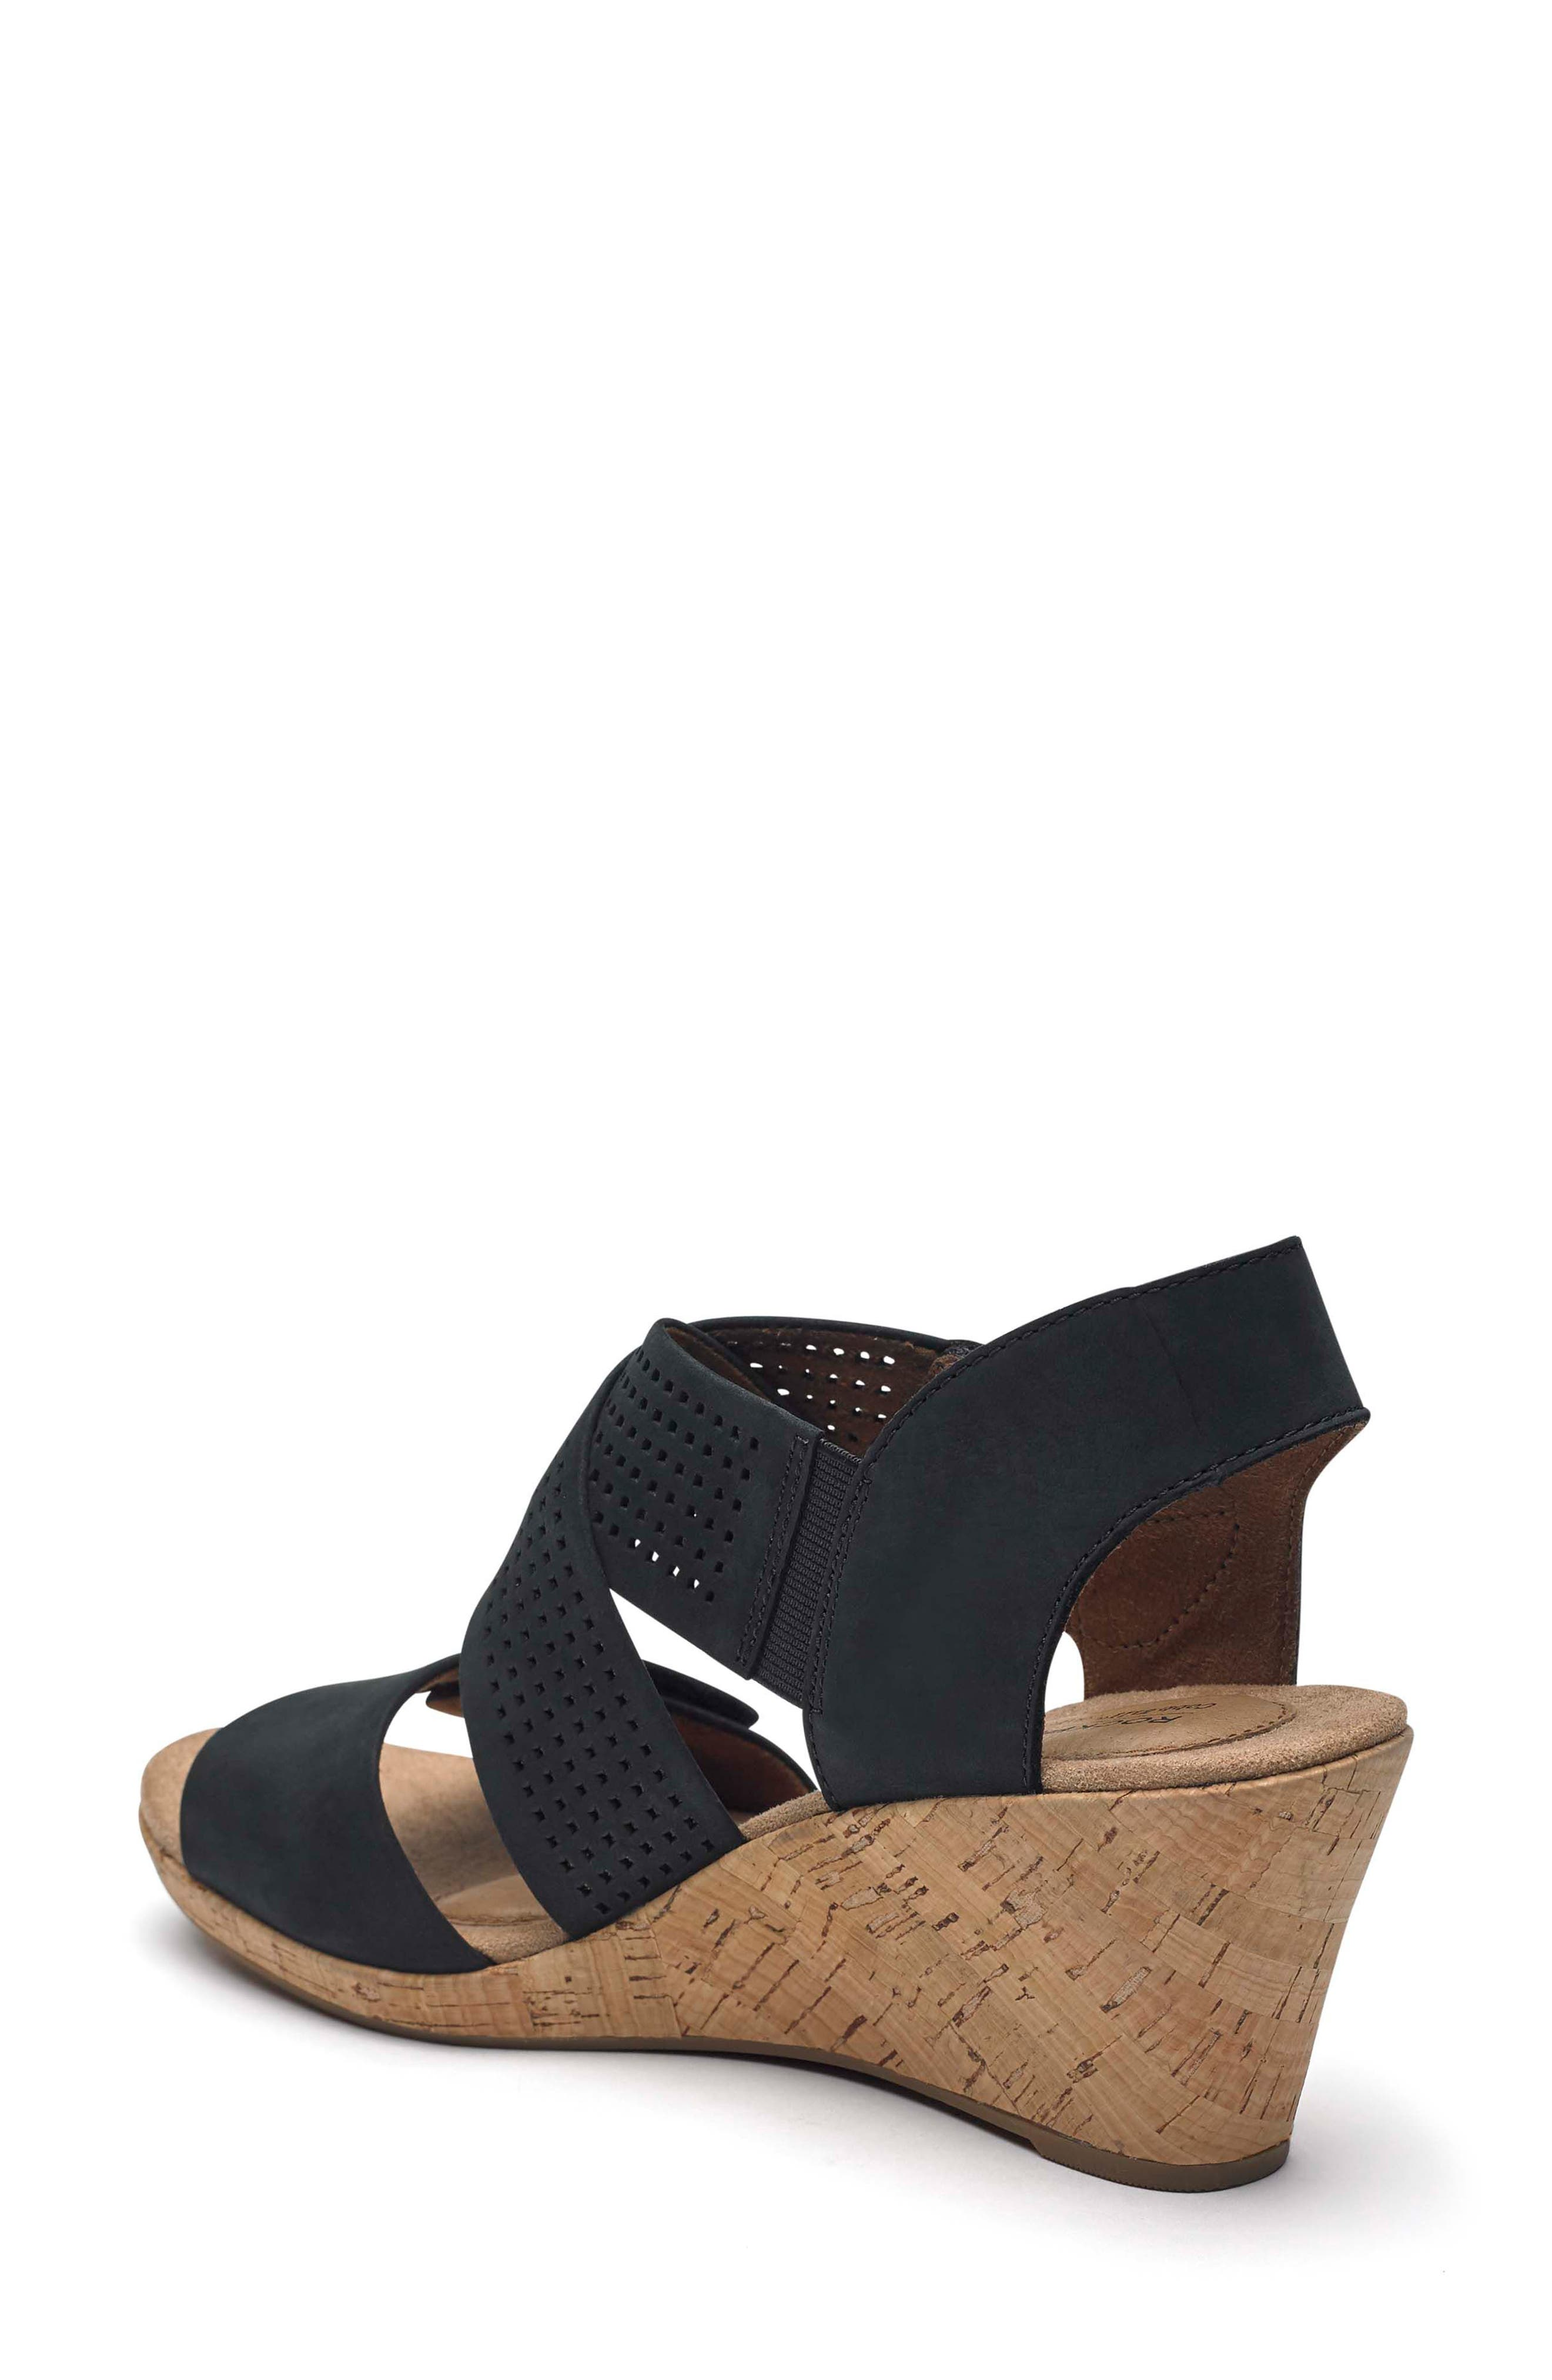 Janna Cross Strap Wedge Sandal,                             Alternate thumbnail 2, color,                             001